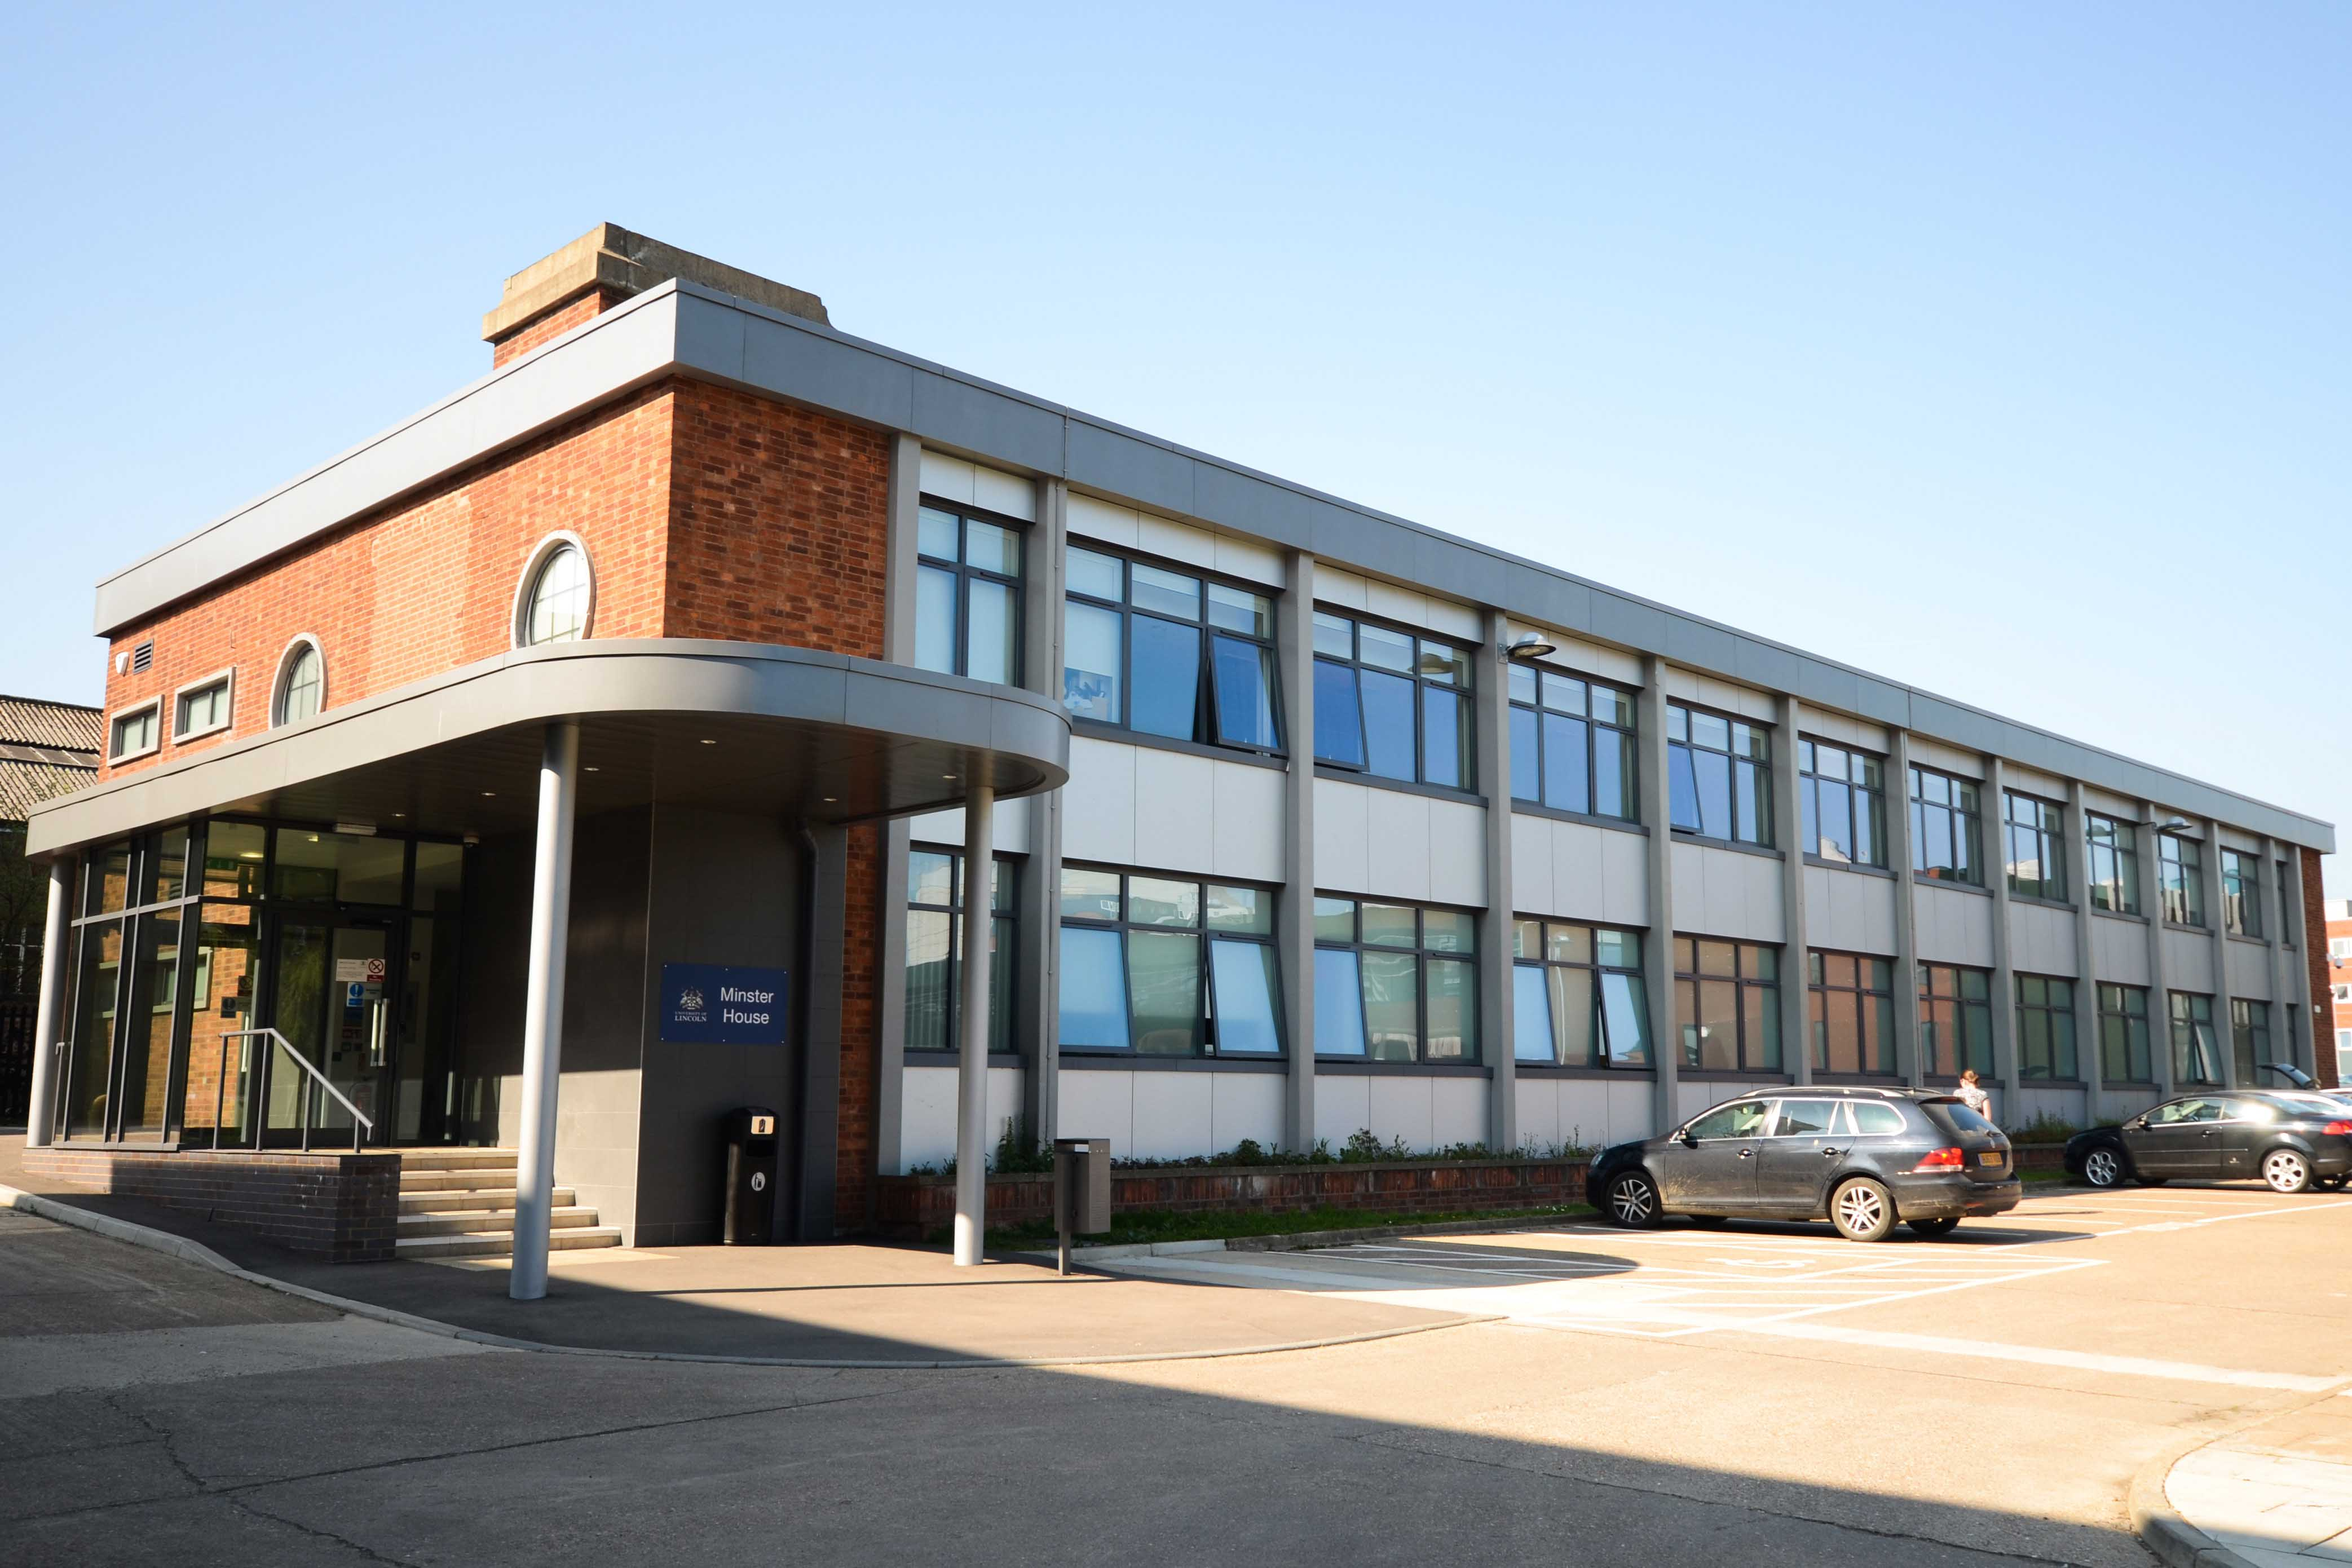 Image of a long two story rectangular building